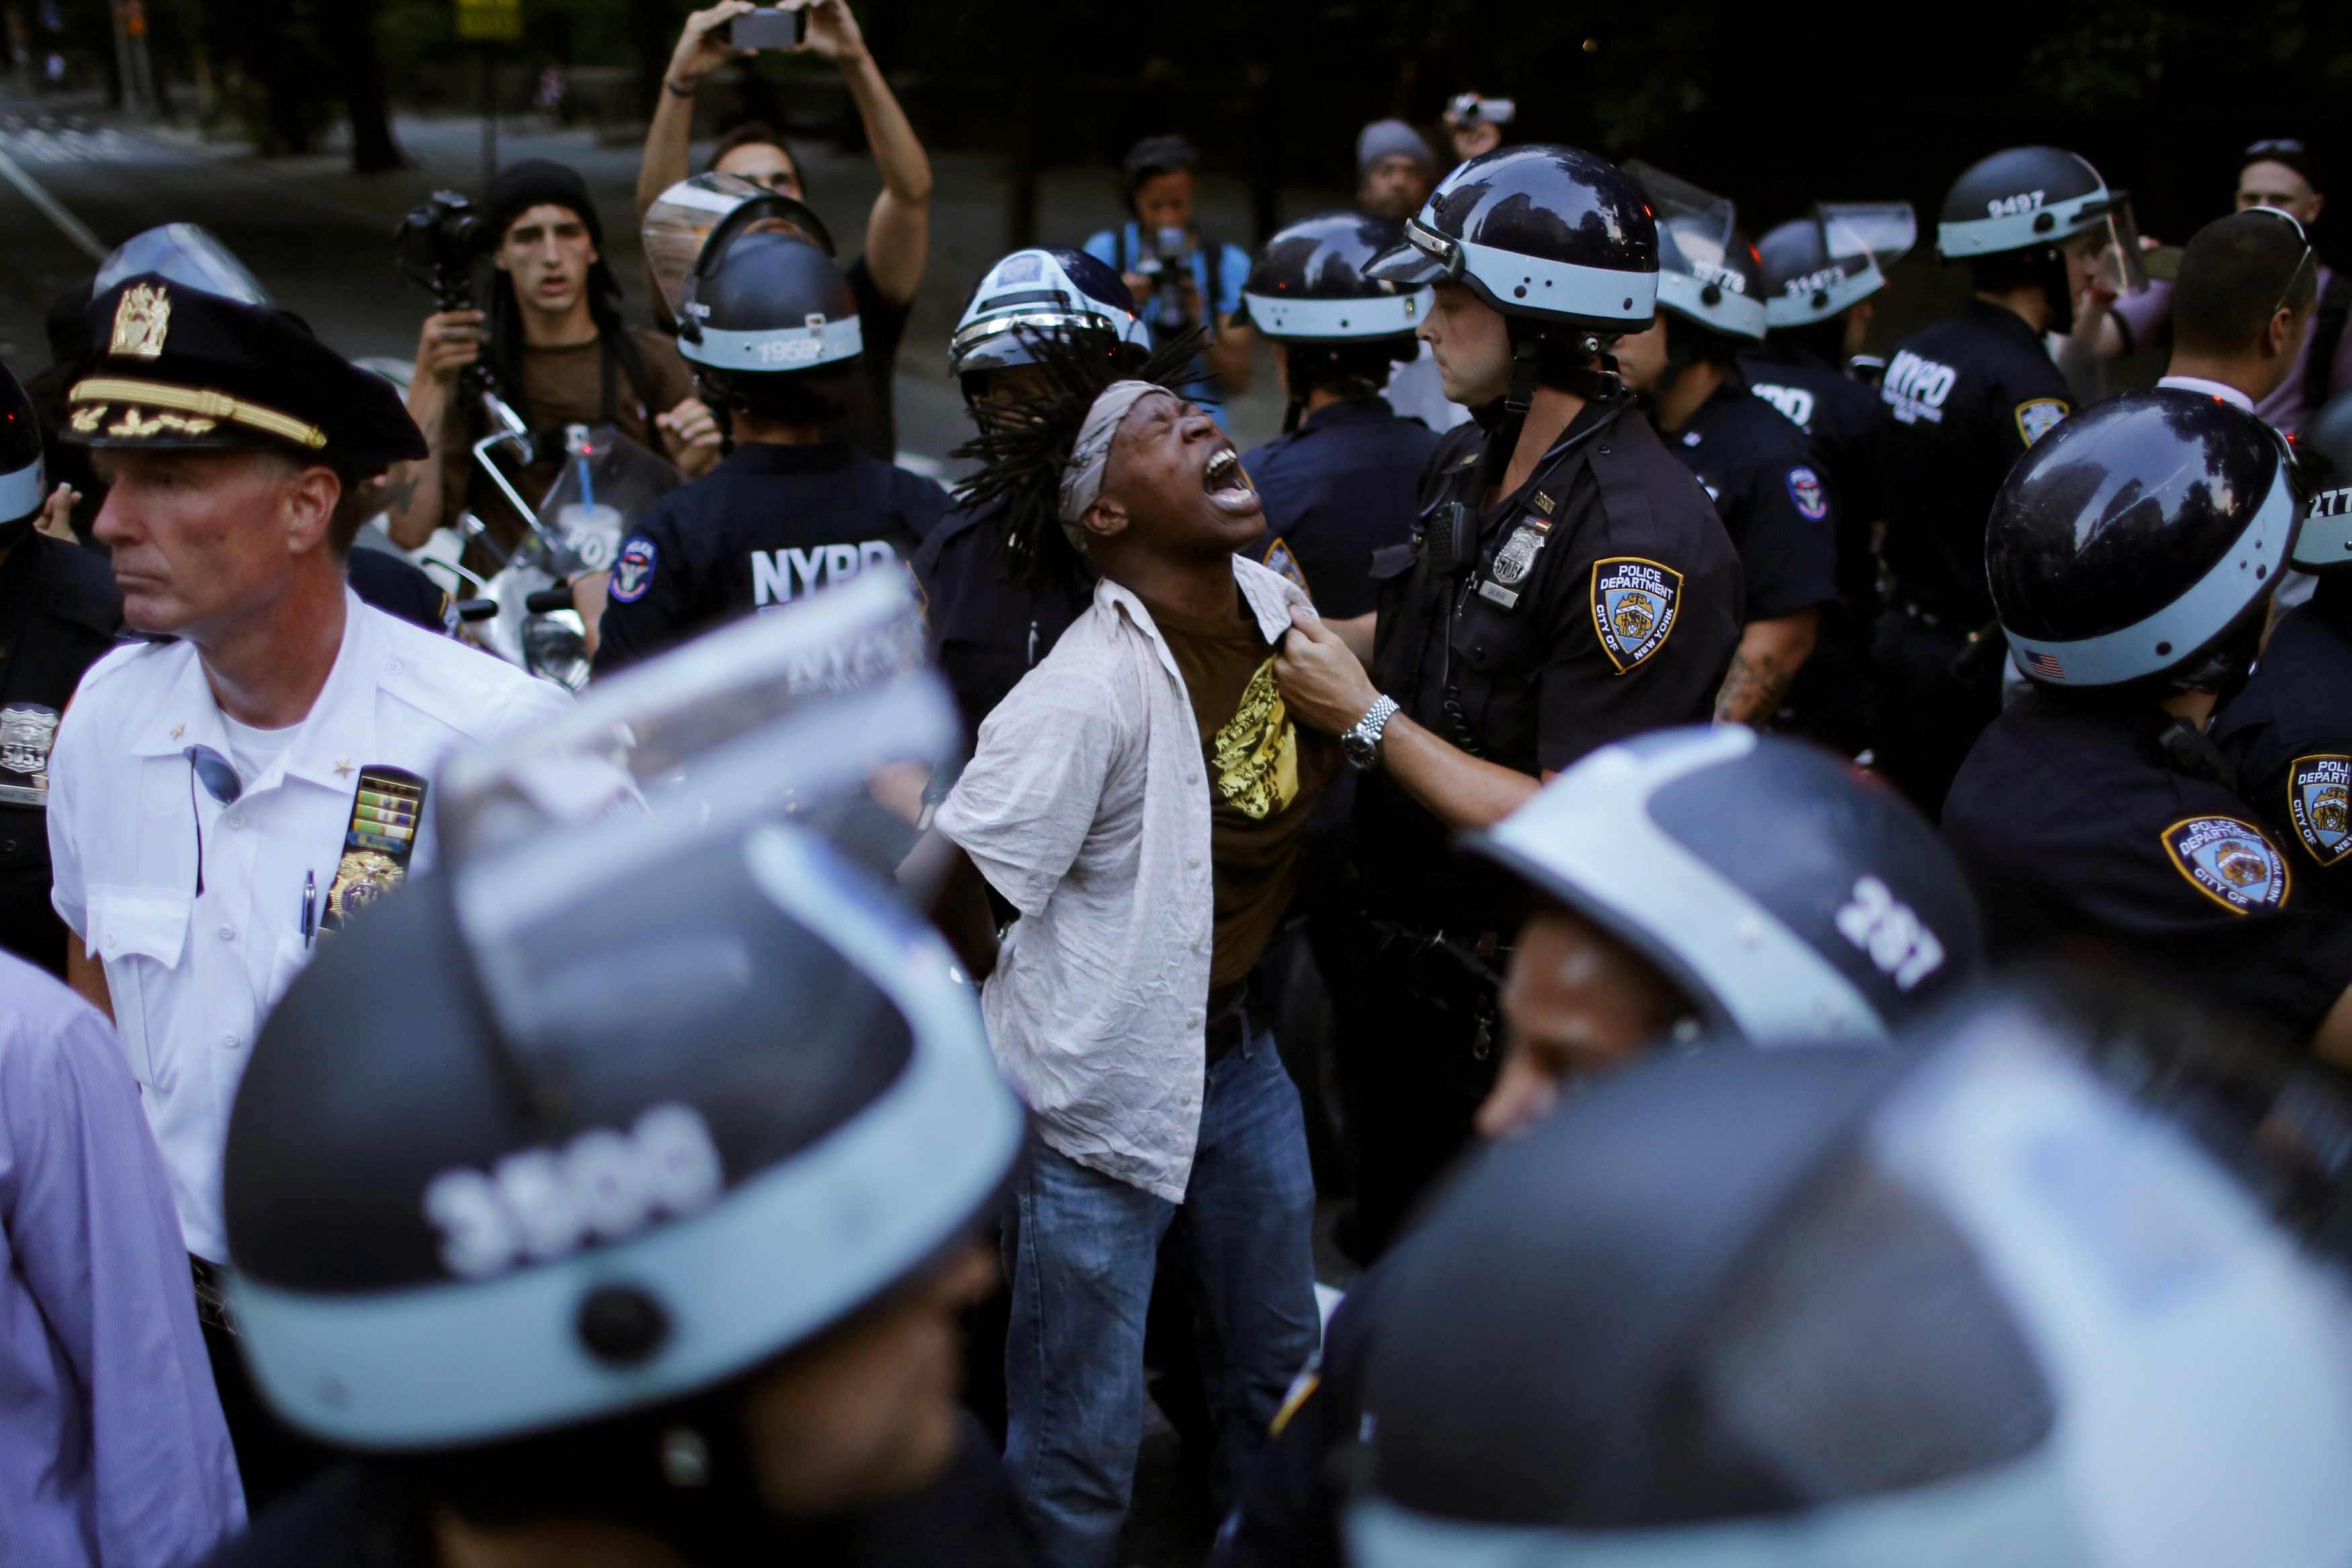 A protester is detained by NYPD officers as people protest the killing of Alton Sterling and Philando Castile during a march in New York City. Photo by Eduardo Munoz/Reuters.